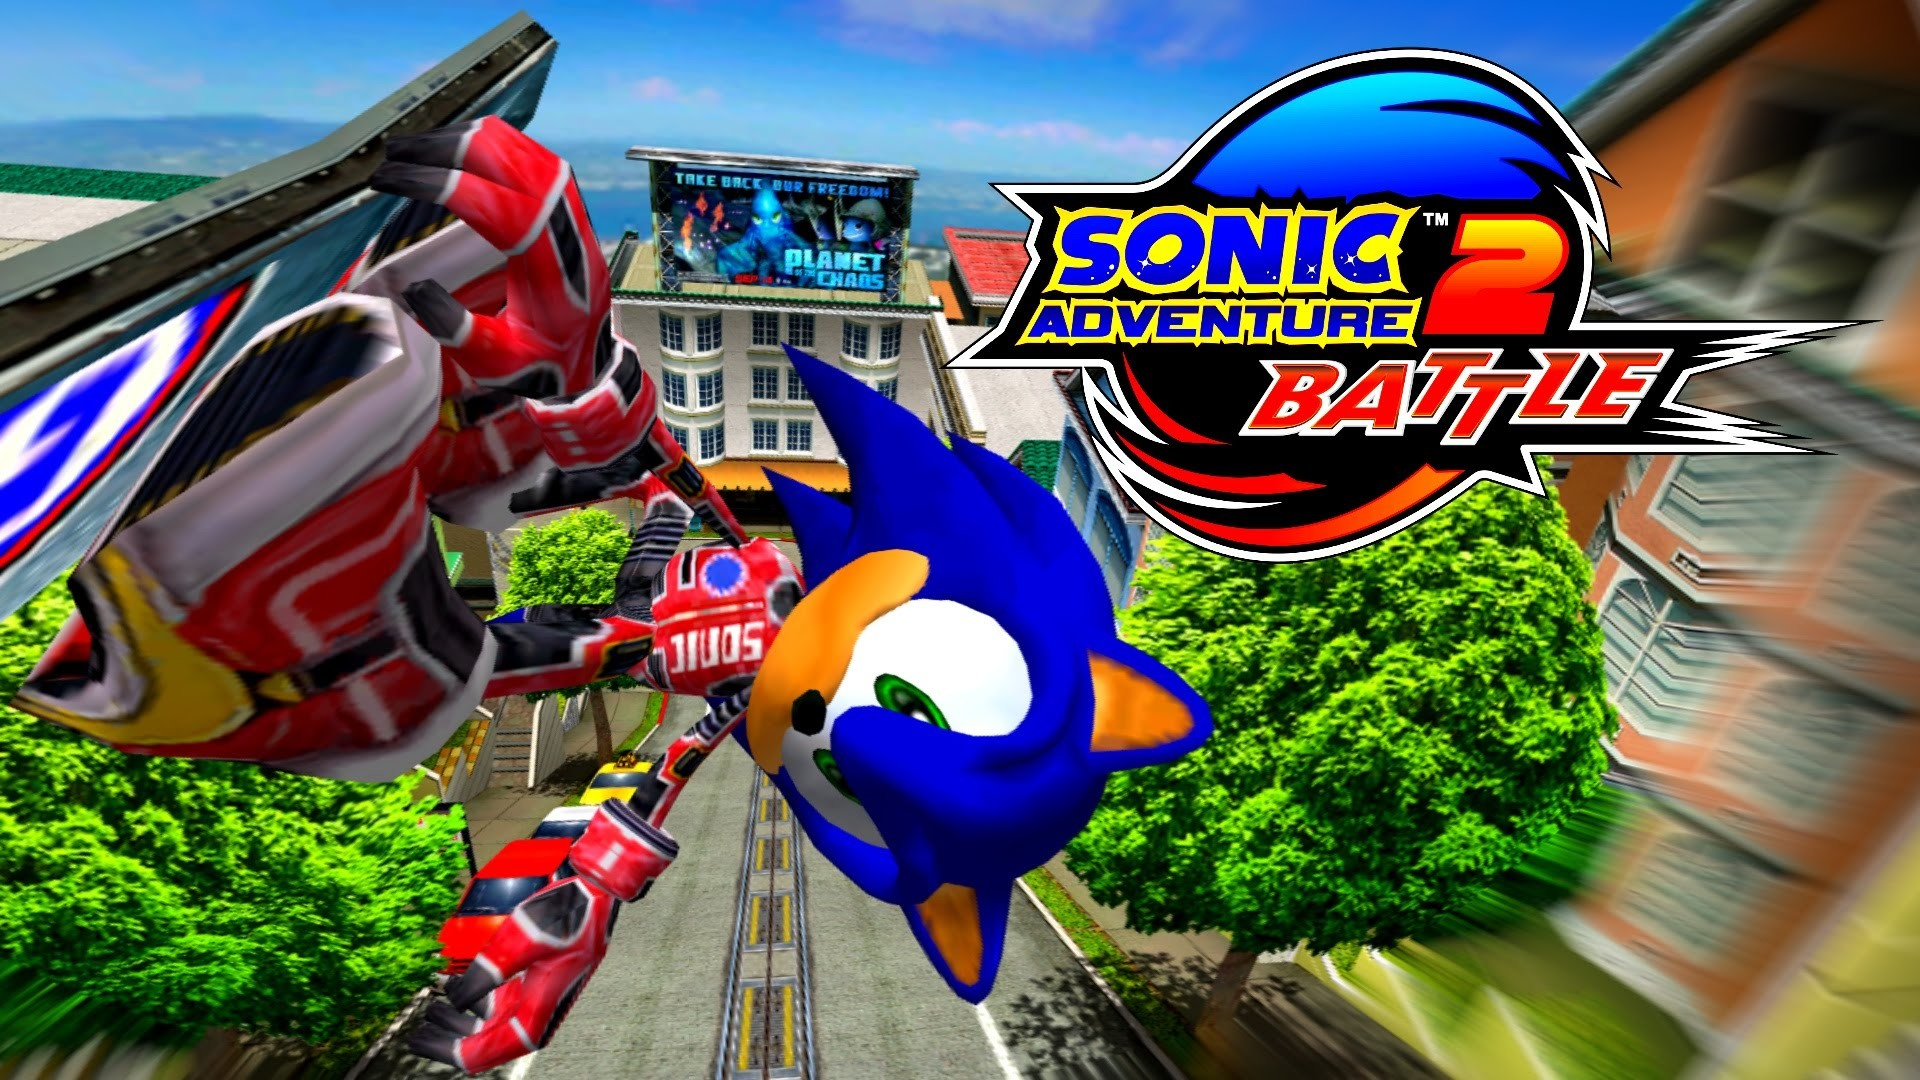 1920x1080 Sonic Adventure 2: Battle - City Escape - Sonic (No HUD) [REAL Full HD,  Widescreen] 60 FPS - YouTube